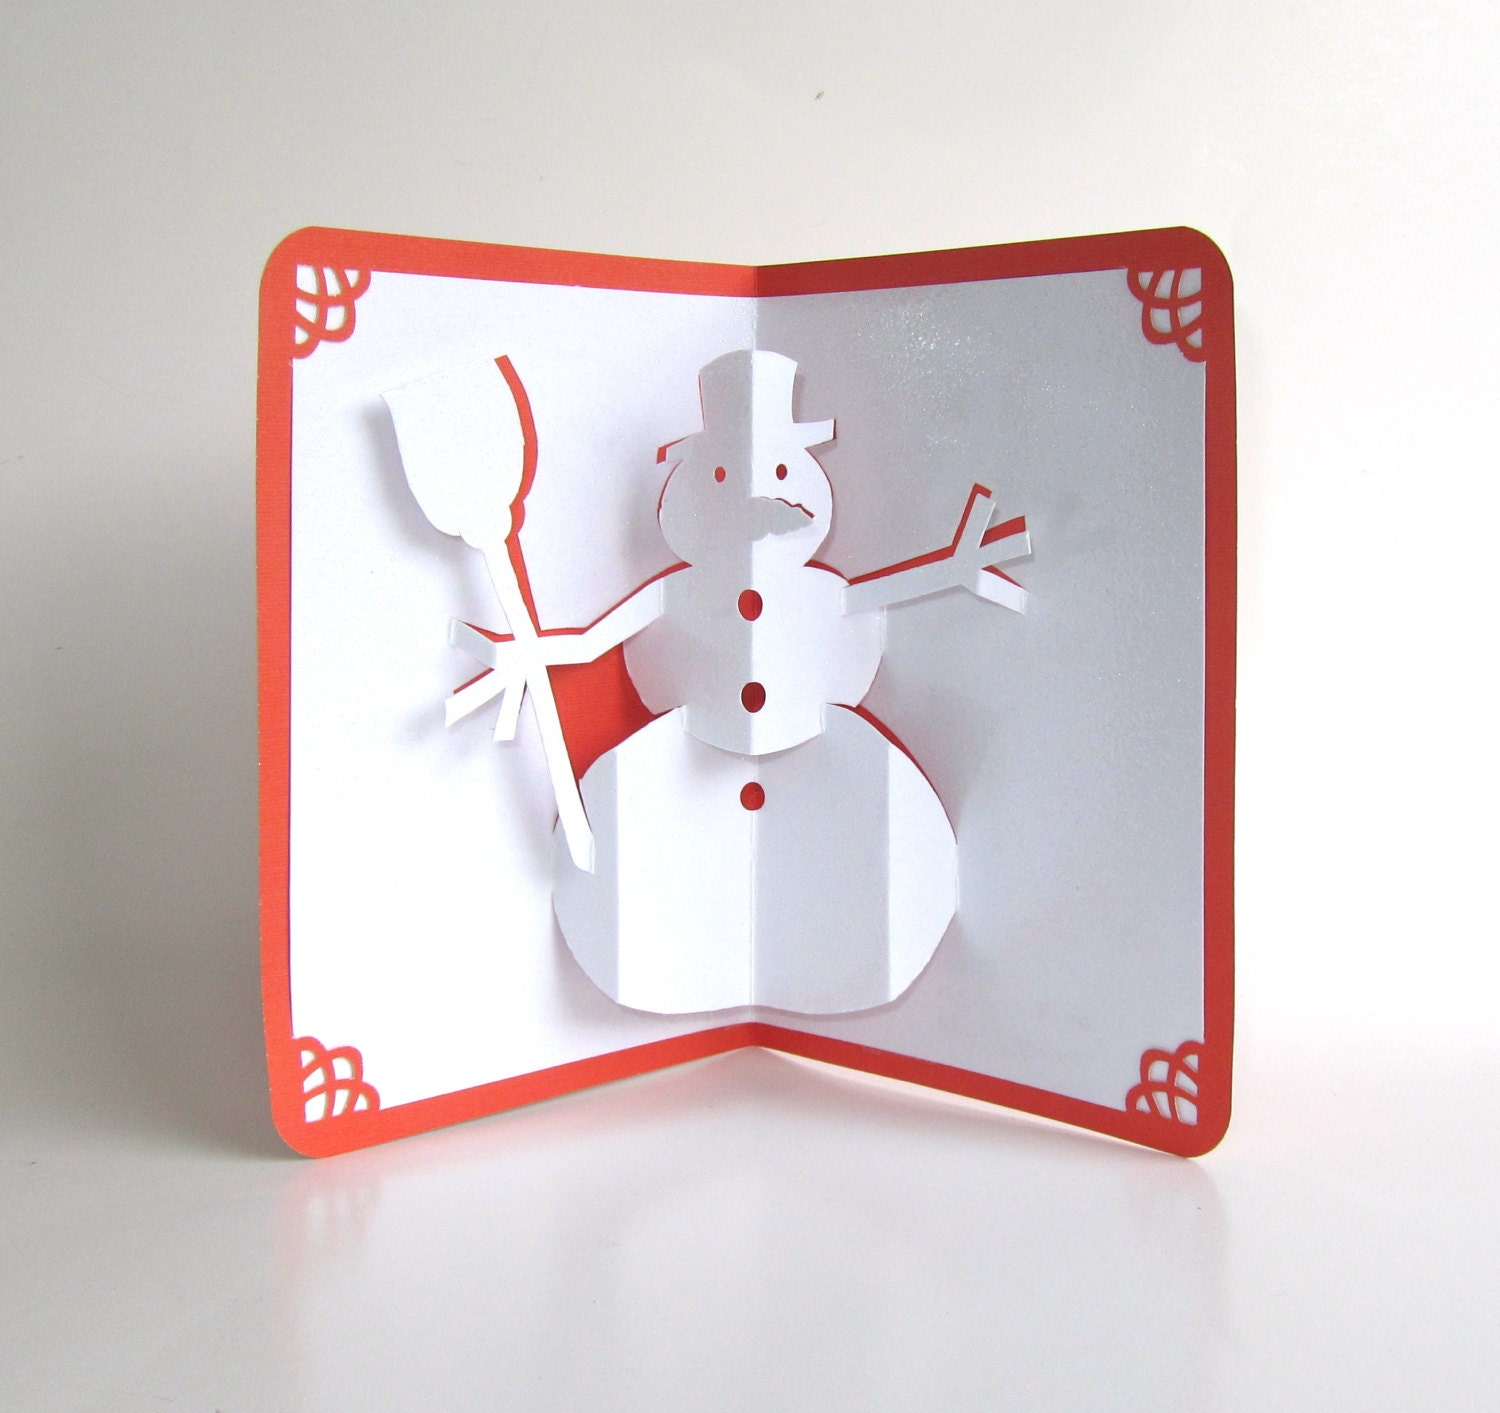 Bonhomme de neige 3d pop up carte de voeux de no l en brillant - Carte de voeux pop up ...